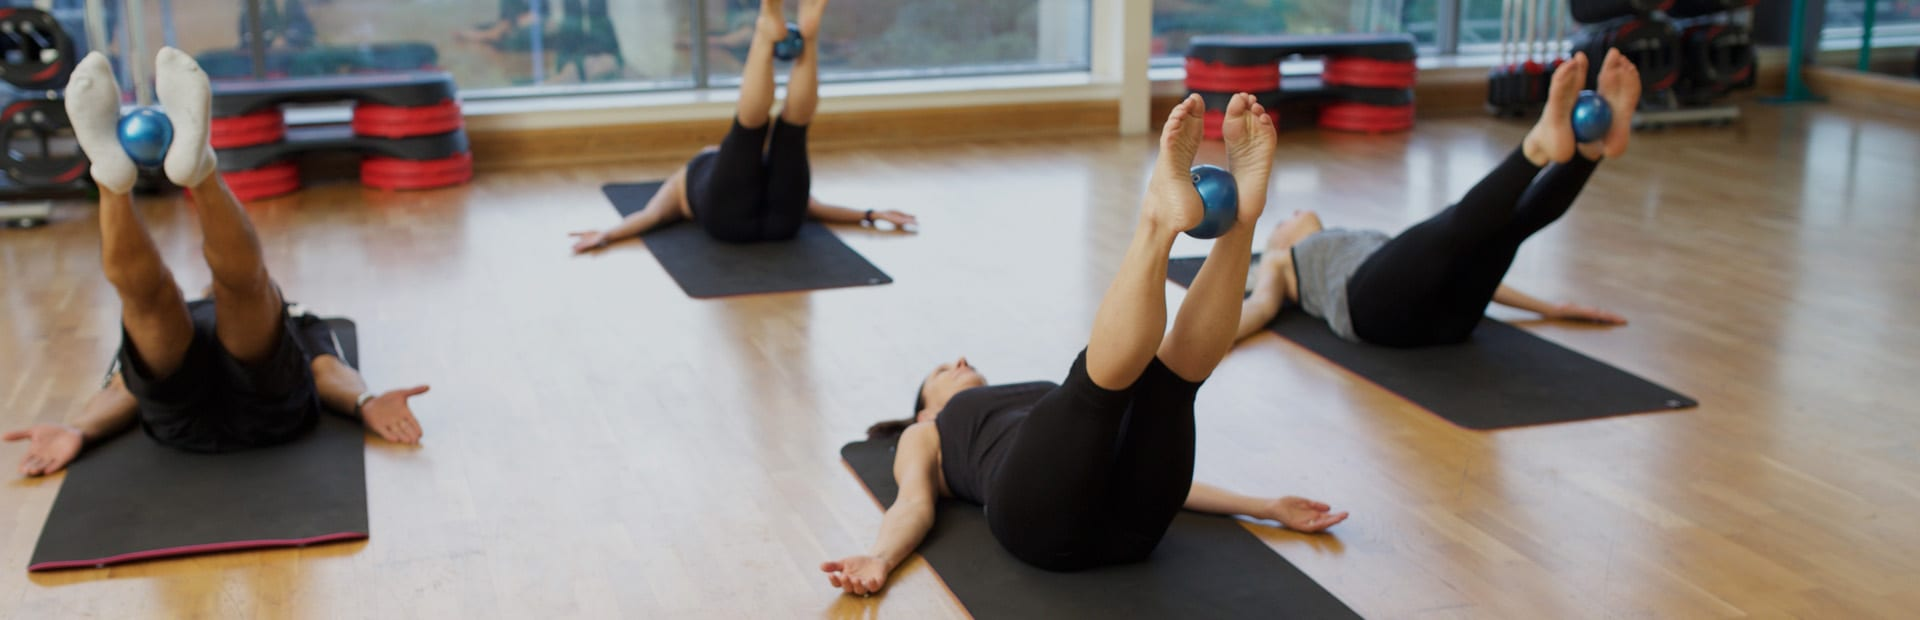 Qualified Pilates instructor leading a class